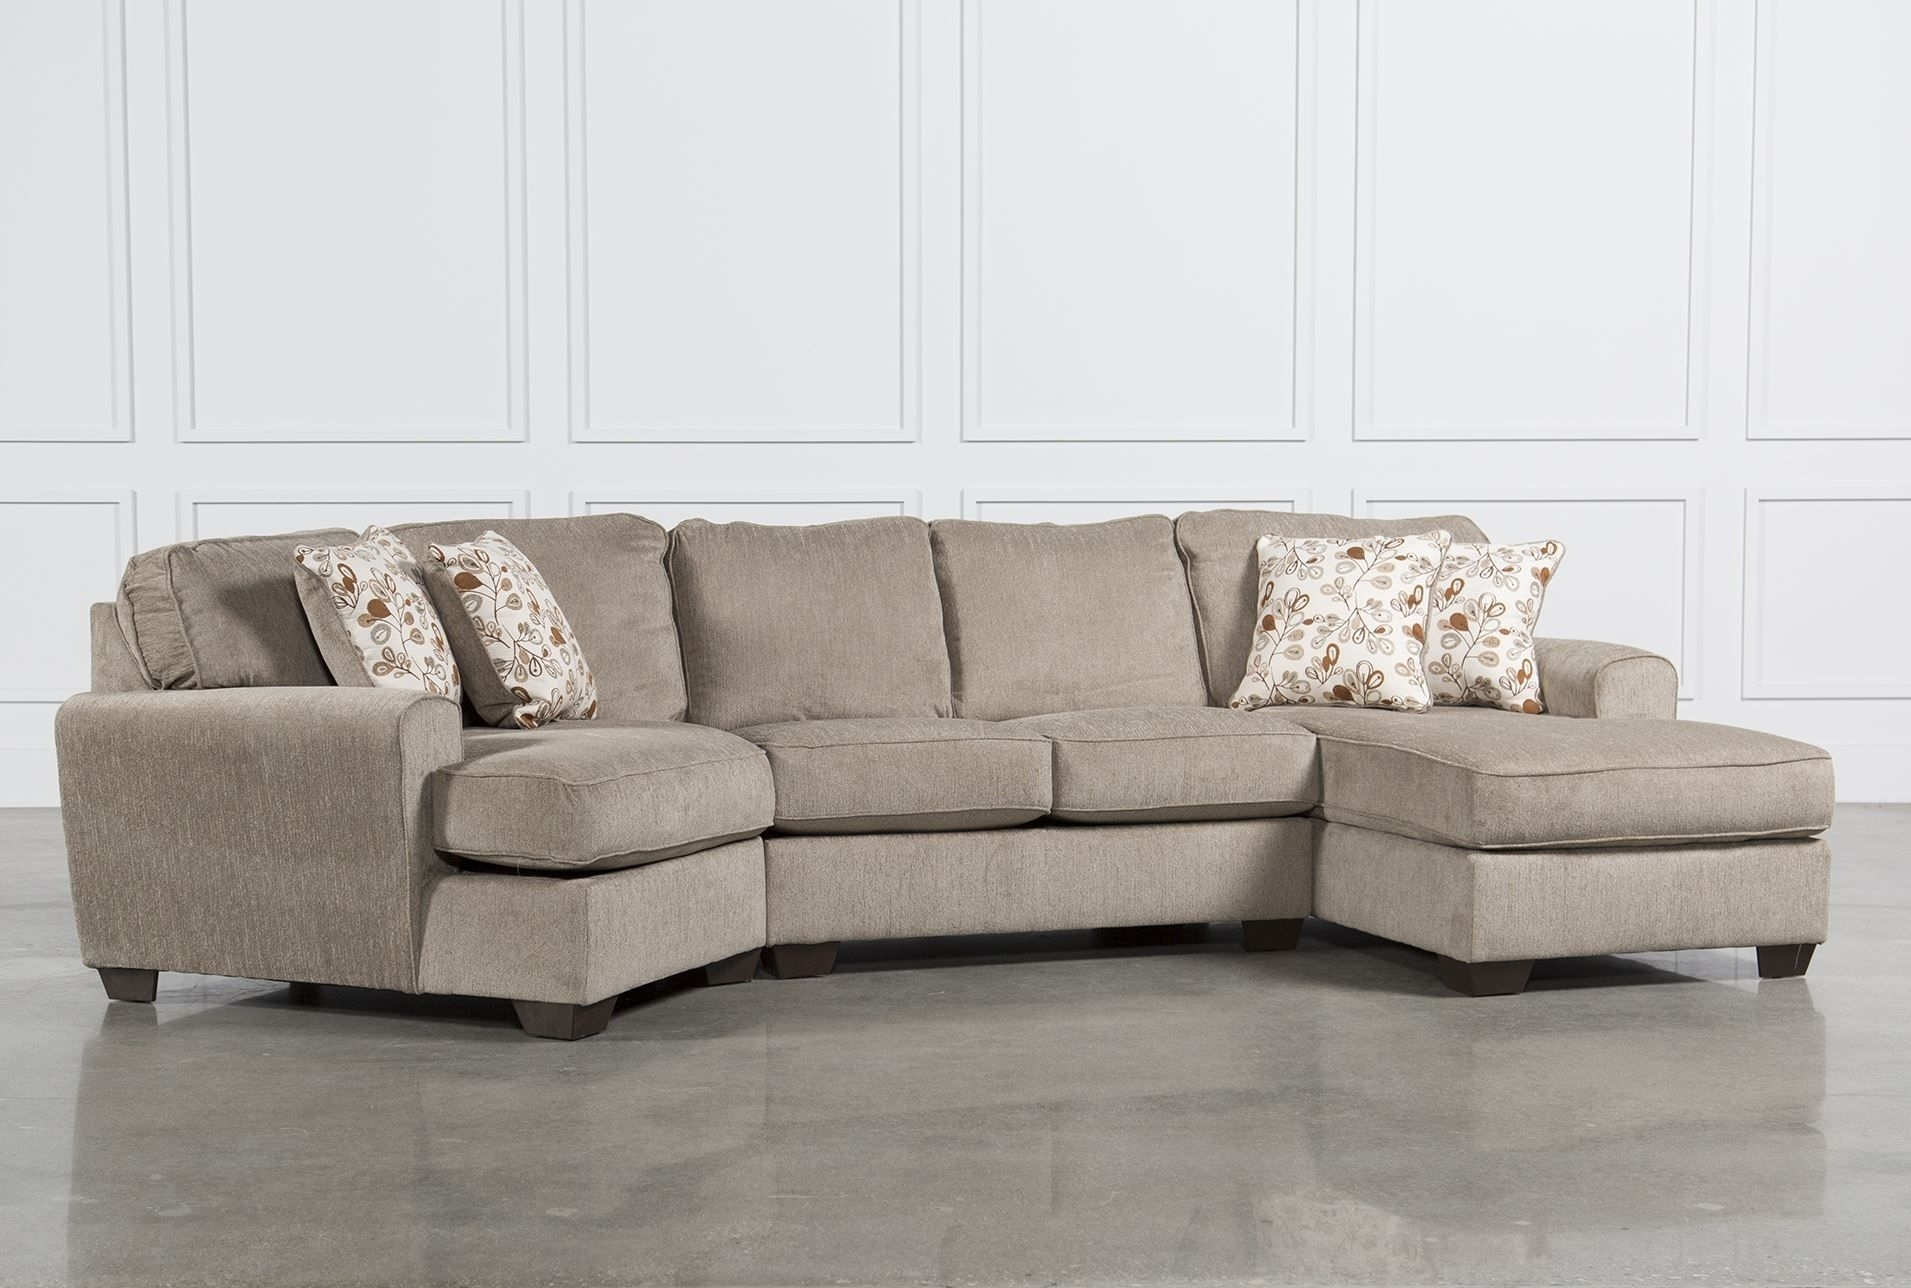 Eugene Oregon Sectional Sofas | Eugene Oregon Pertaining To Evan 2 Piece Sectionals With Raf Chaise (Image 13 of 25)